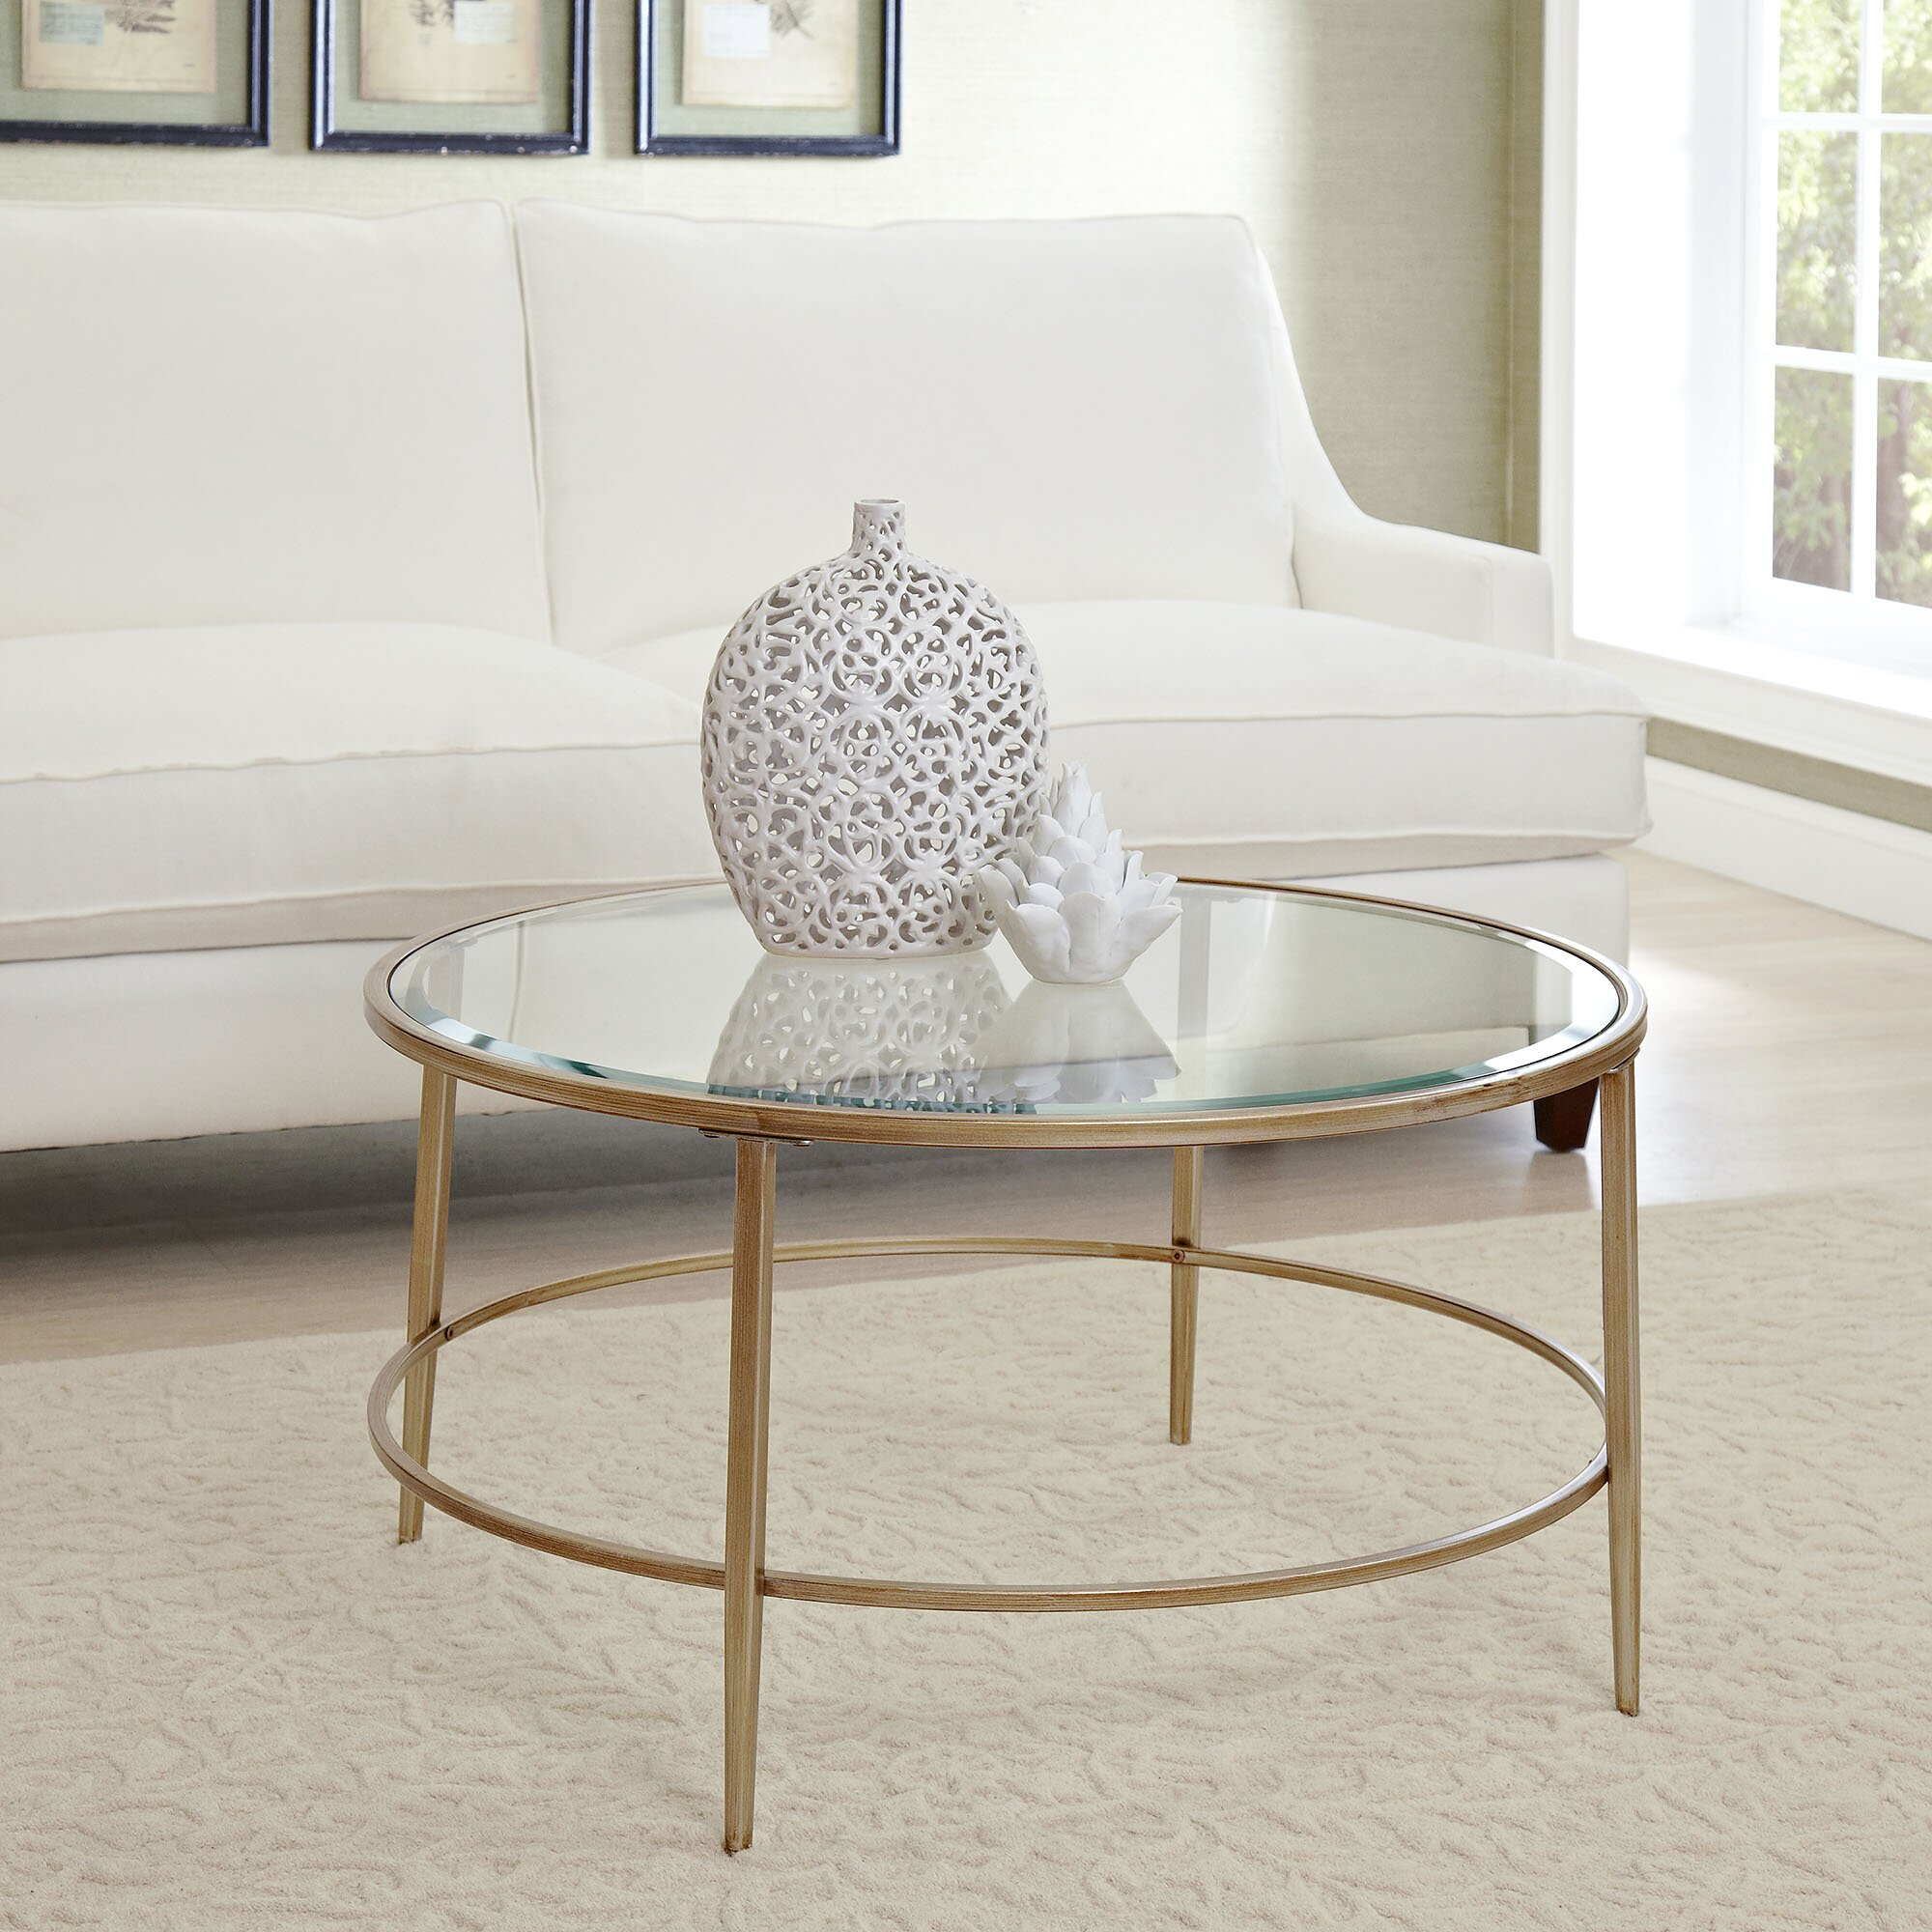 Round Glass Living Room Table